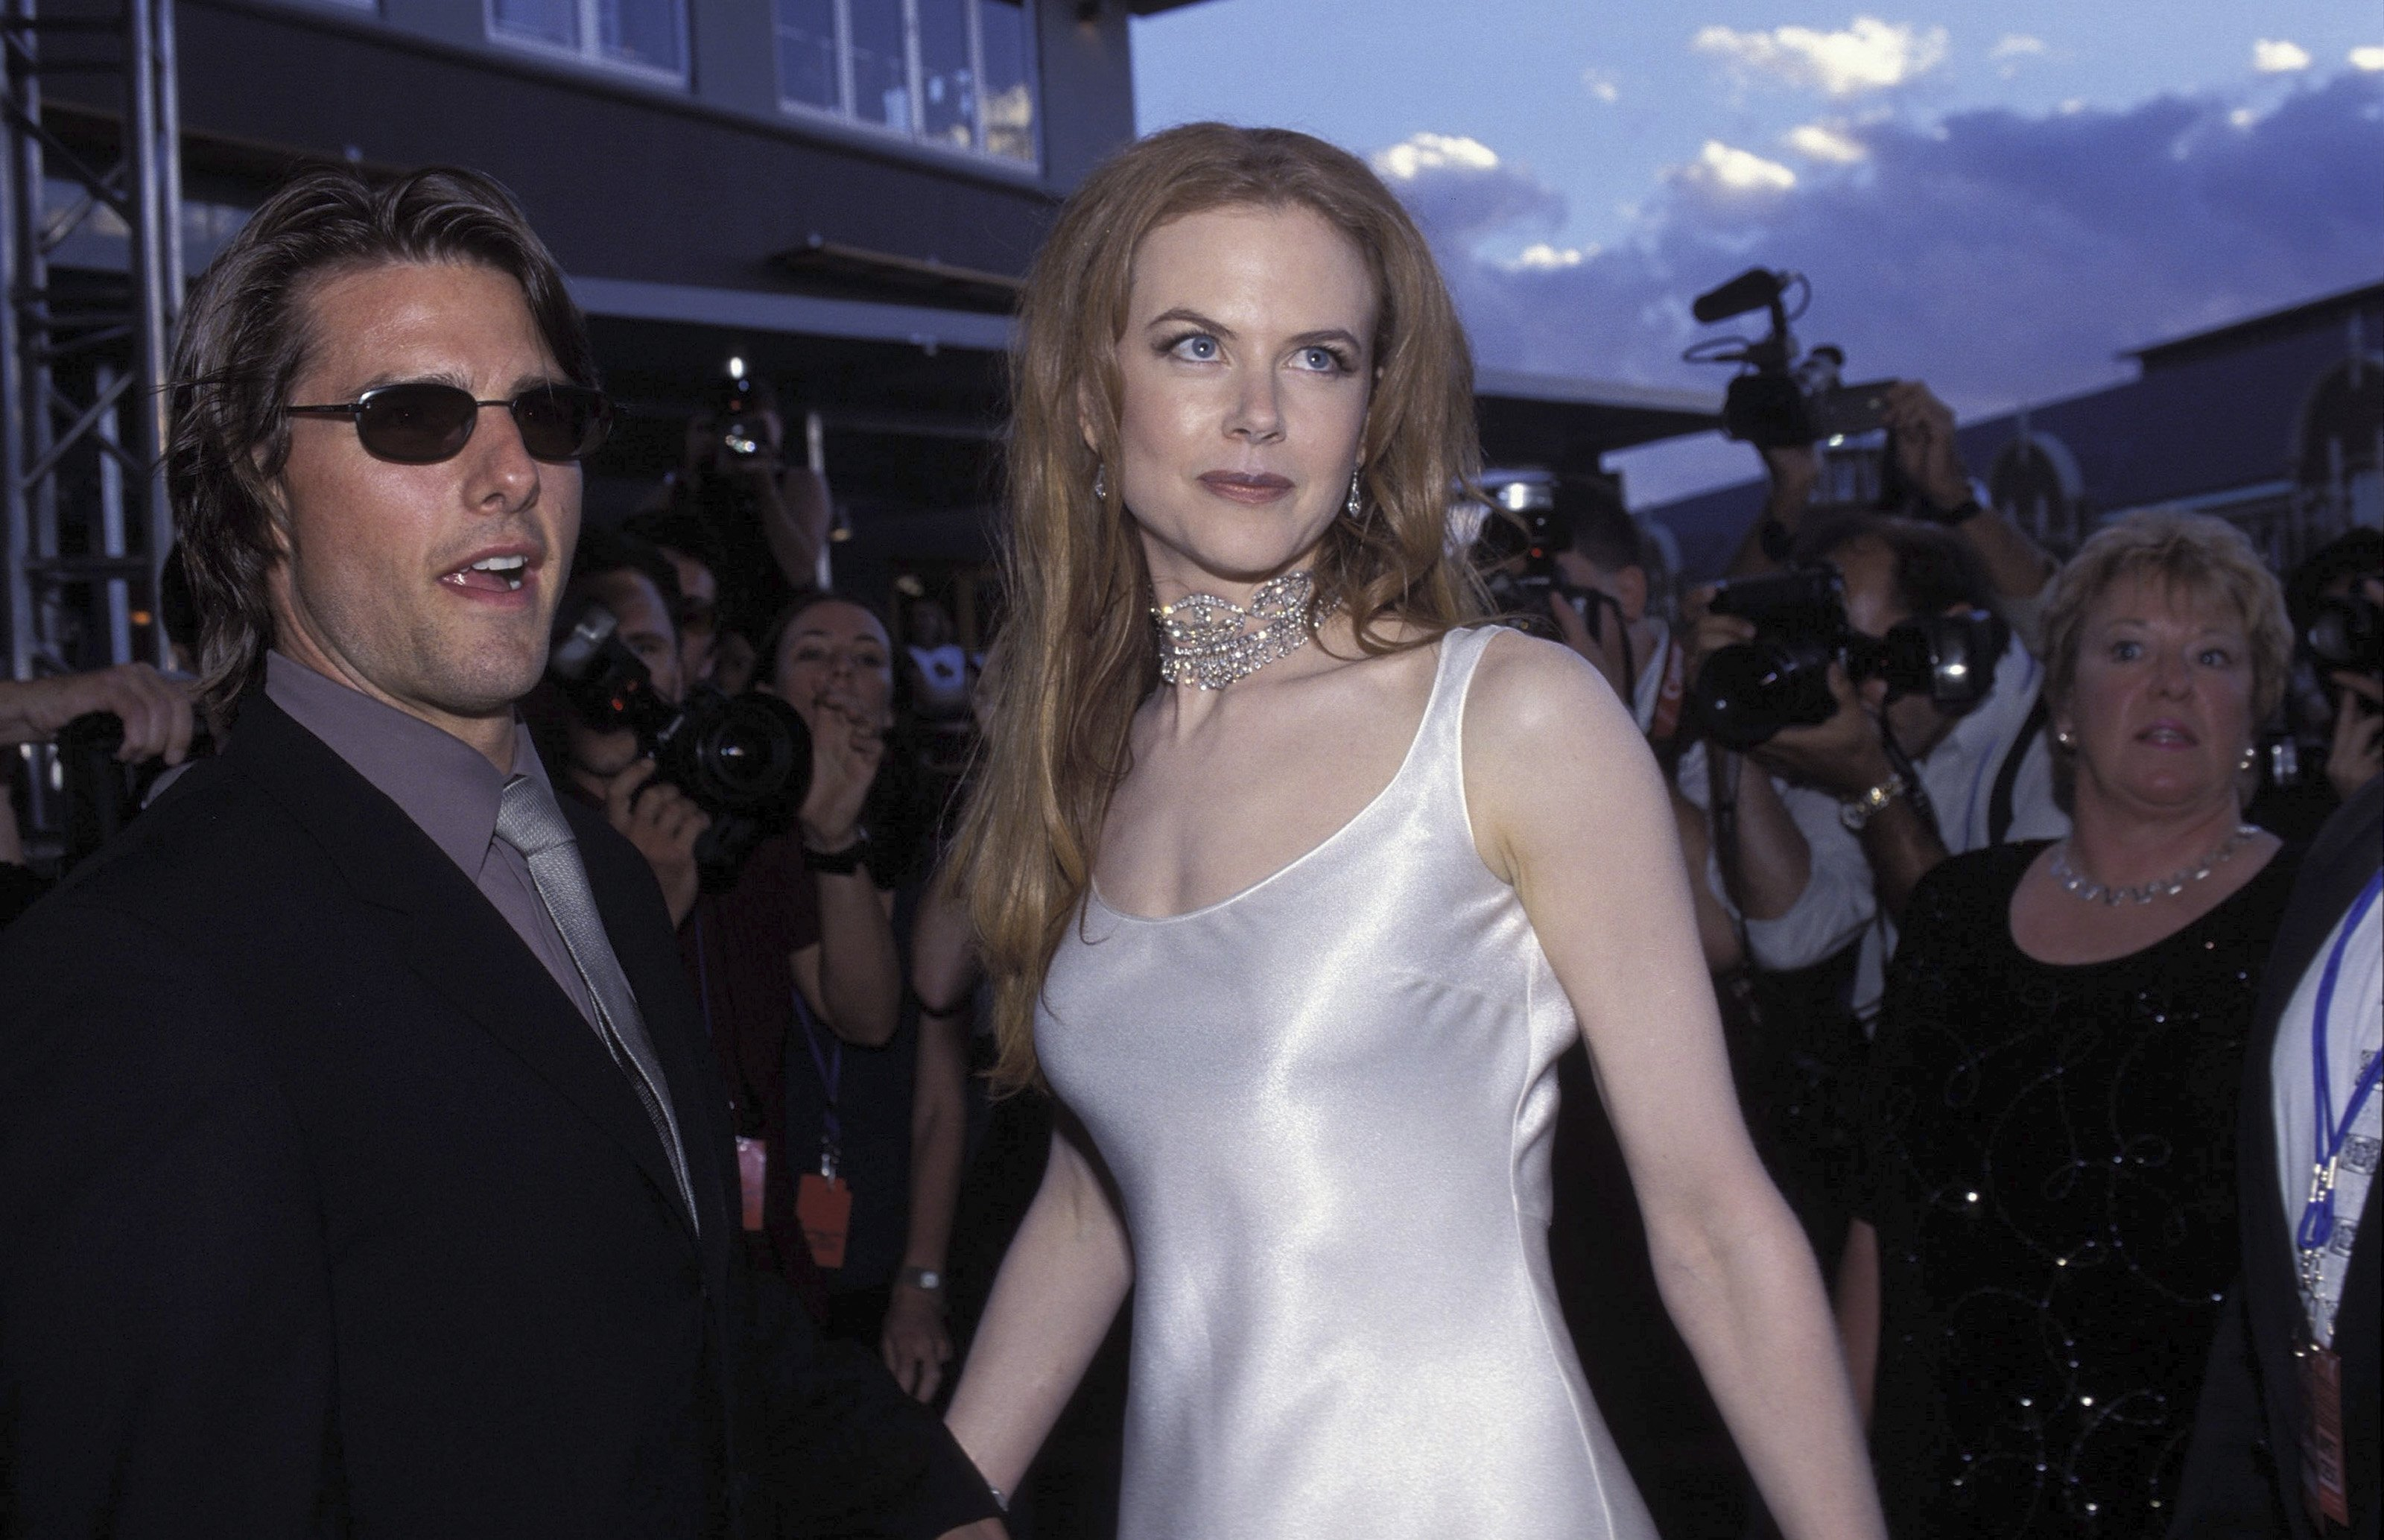 Nicole Kidman and Tom Cruise at the Fox Studios Gala opening in Sydney, Australia in 1999 | Photo: Getty Images